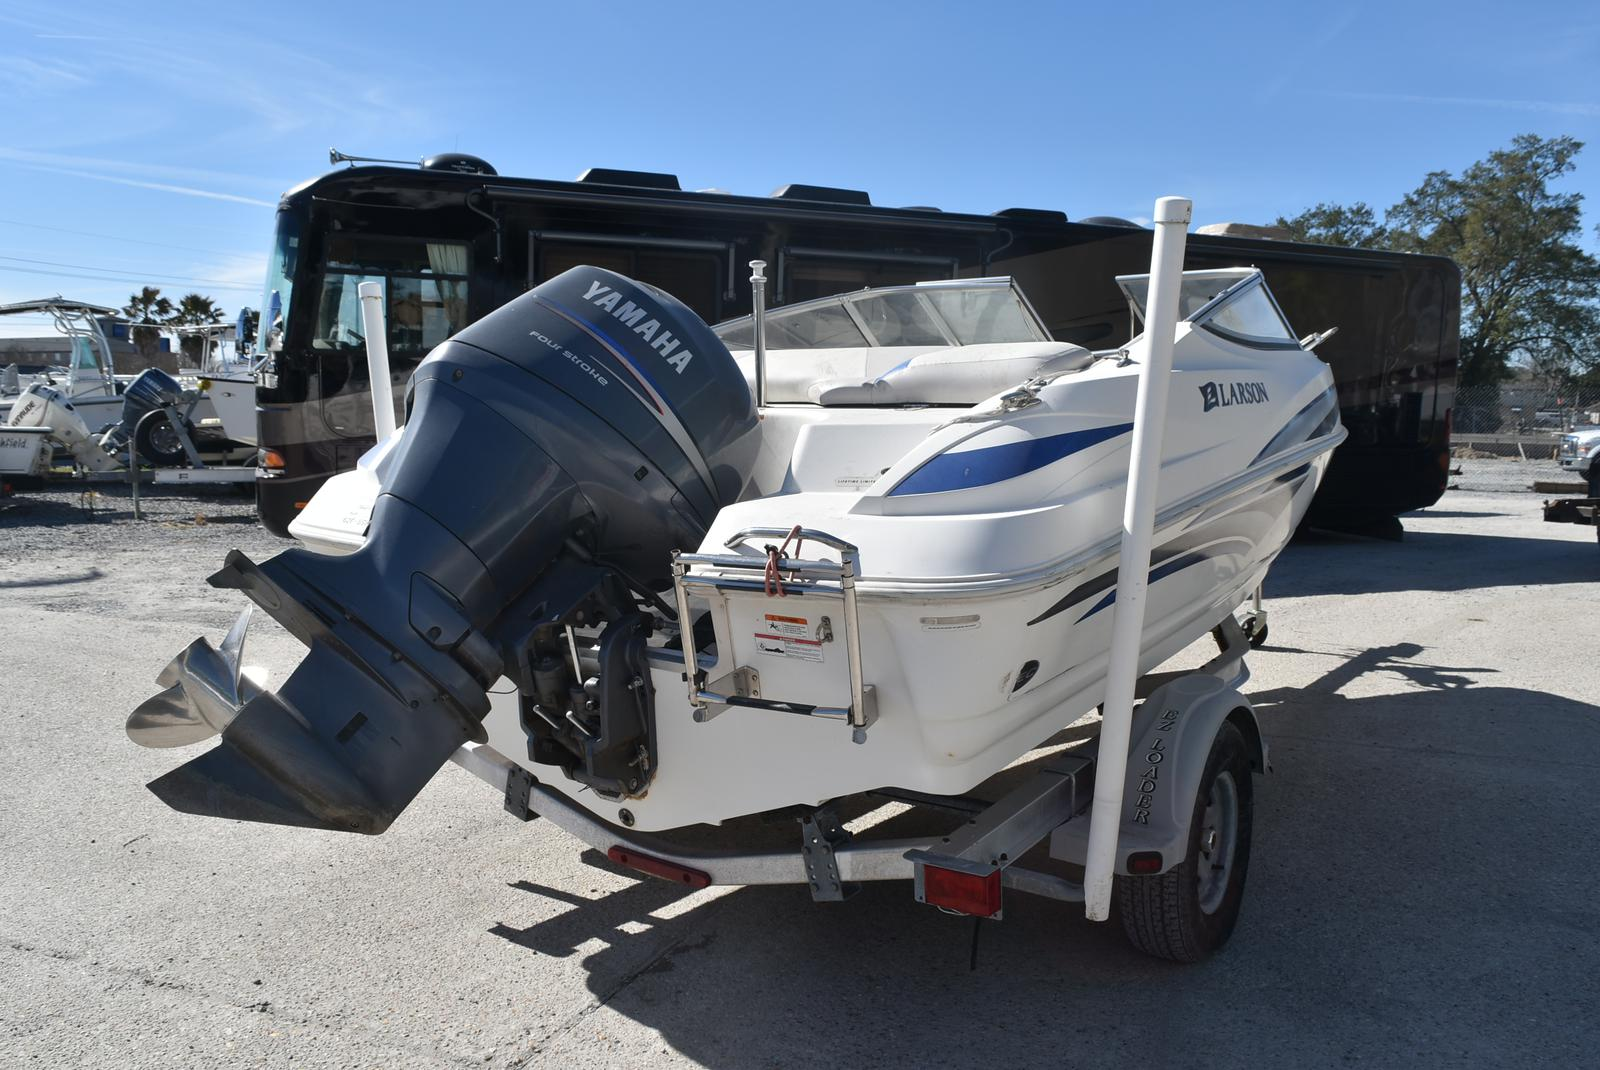 2007 Larson boat for sale, model of the boat is Senza 186 & Image # 7 of 15